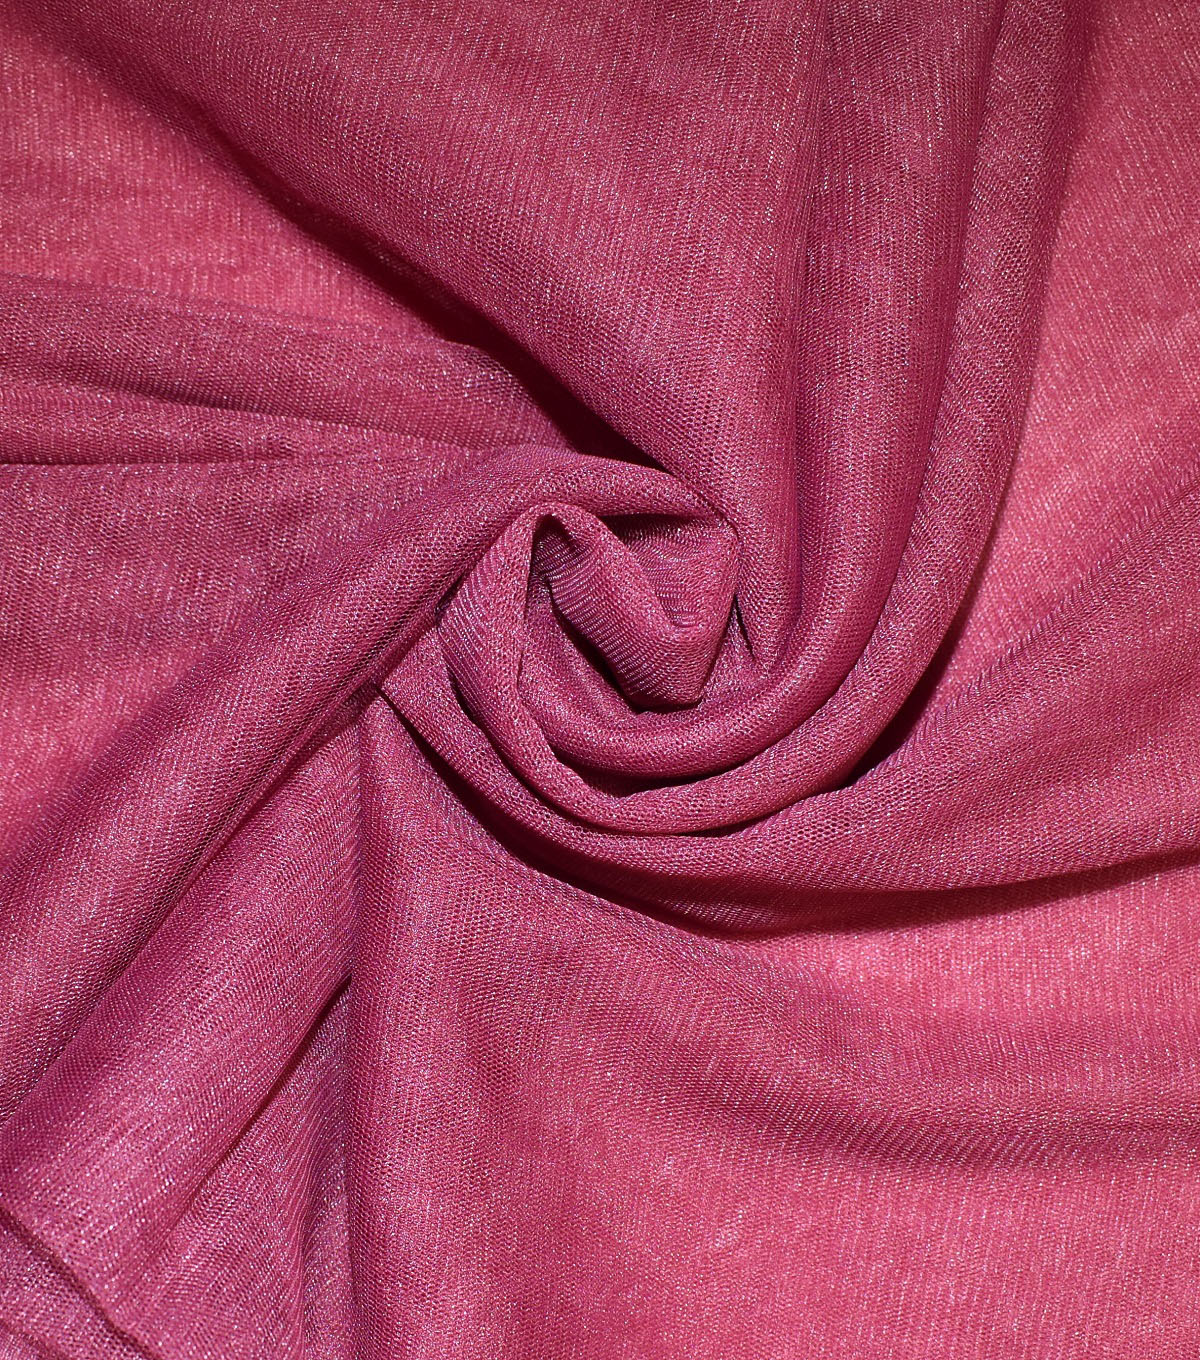 Casa Collection Solid Tulle Fabric 57\u0027\u0027, Tawny Port